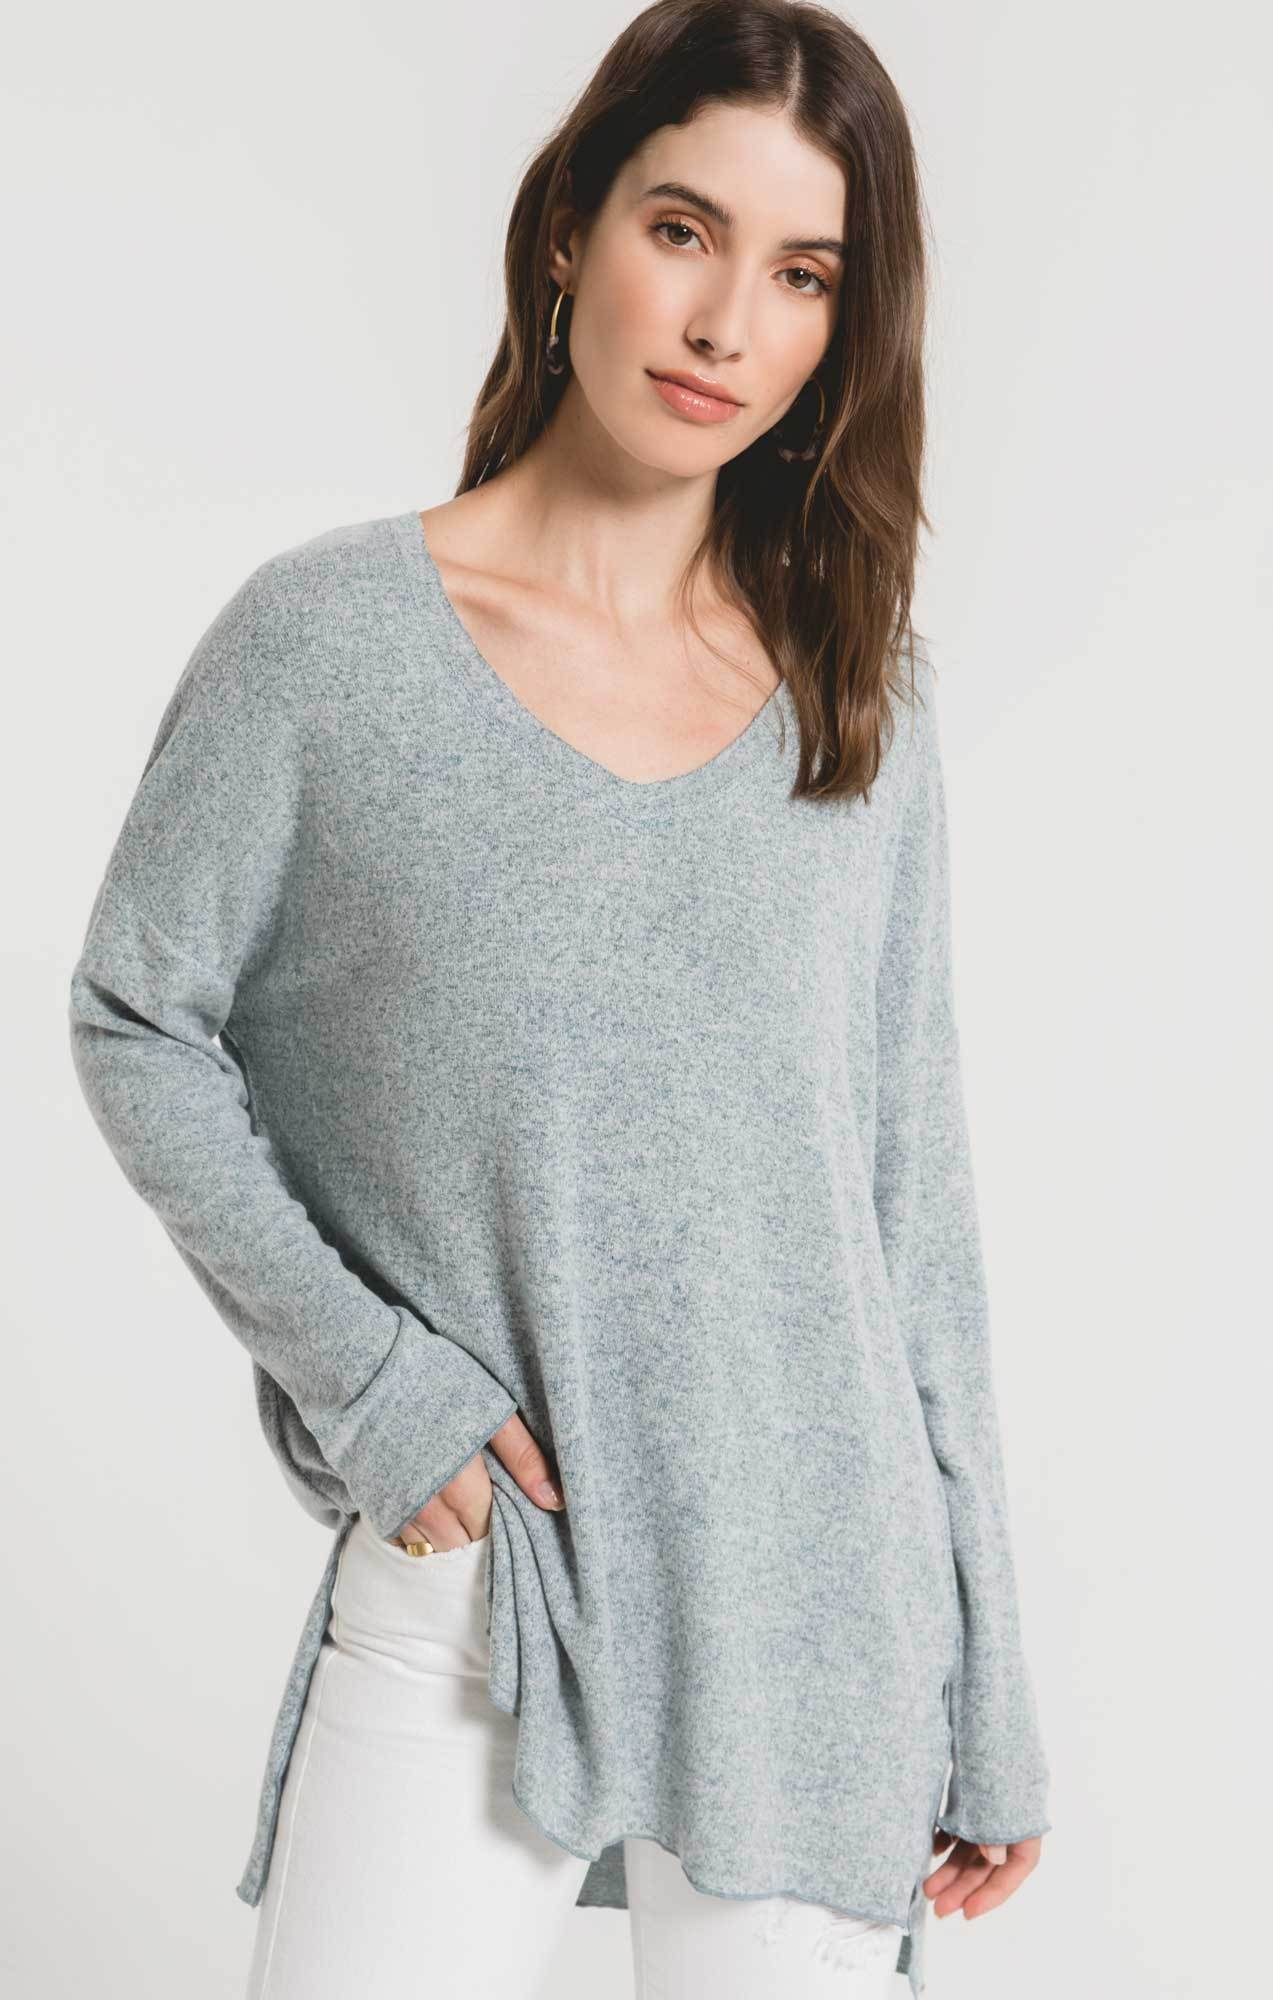 Tops Marled Sweater Knit V-Neck Tunic Marled Sweater Knit V-Neck Tunic